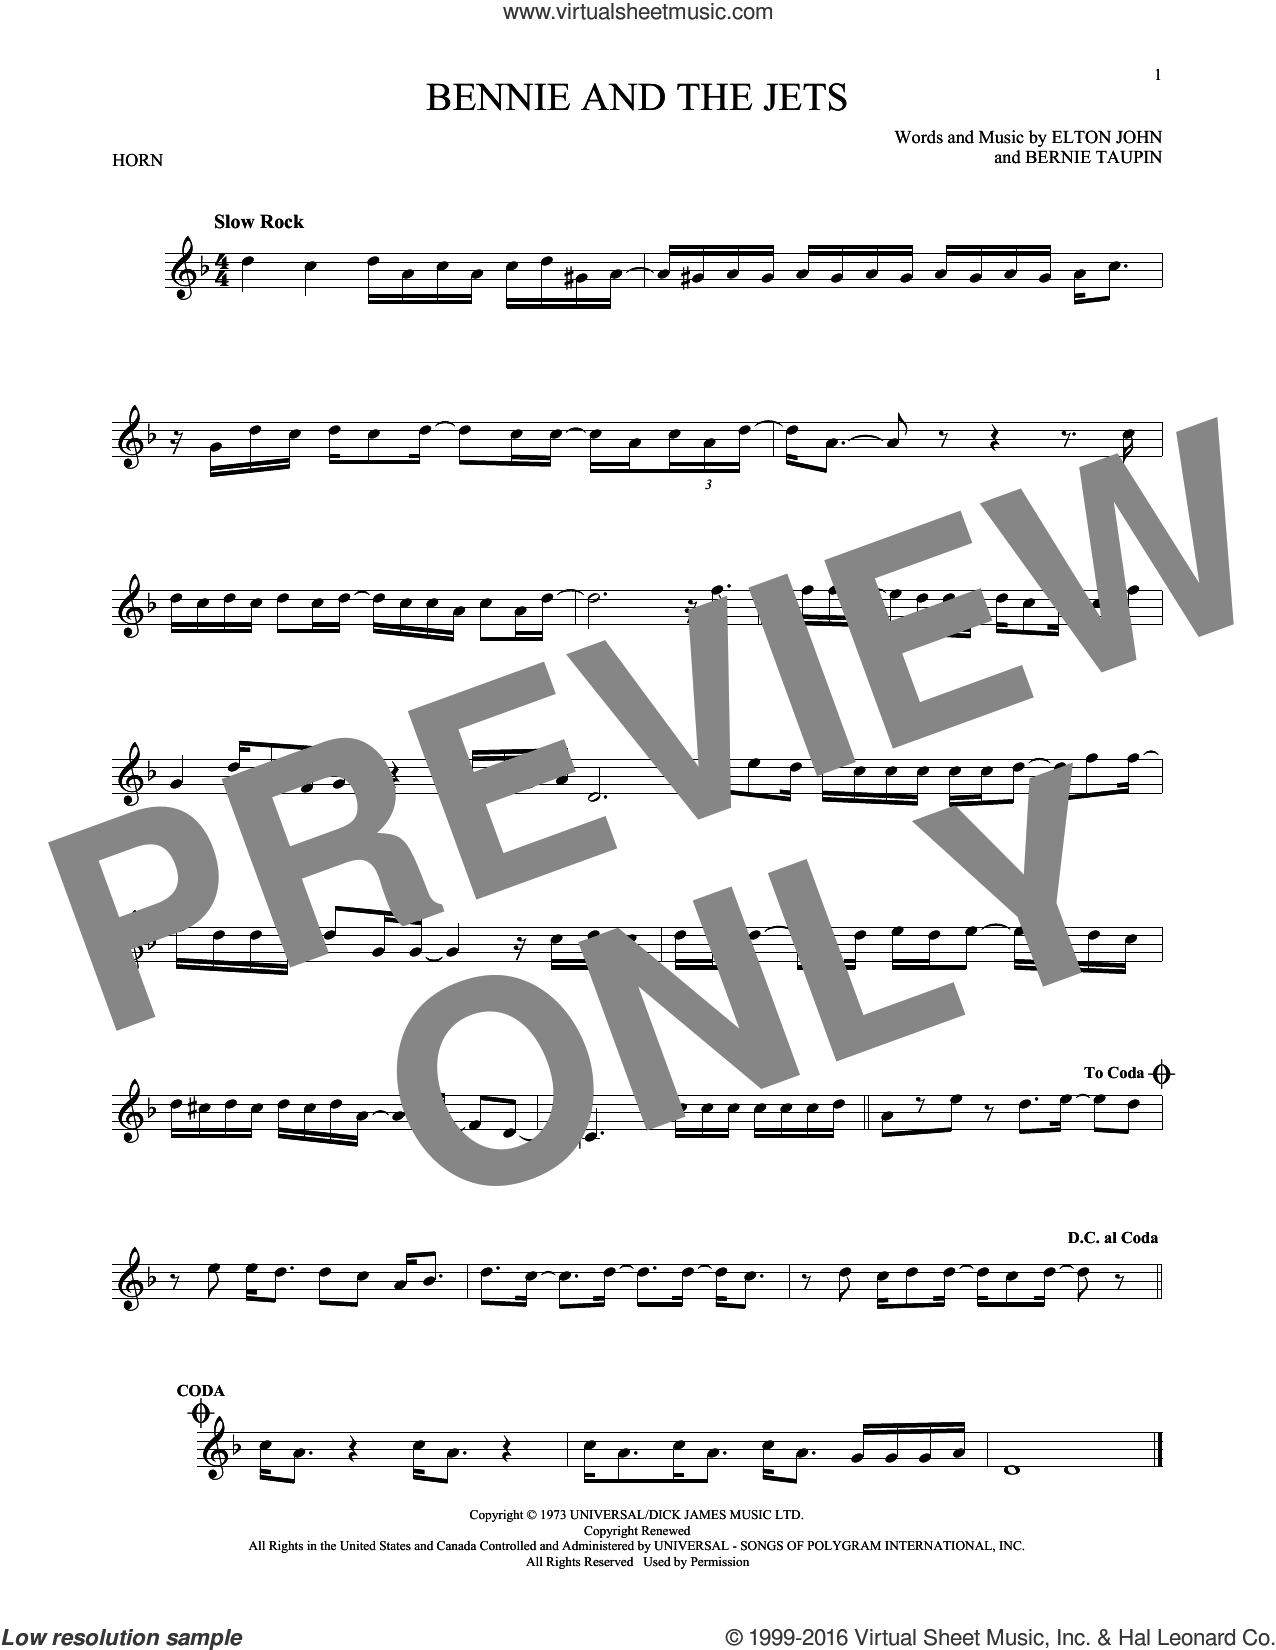 Bennie And The Jets sheet music for horn solo by Elton John and Bernie Taupin, intermediate skill level